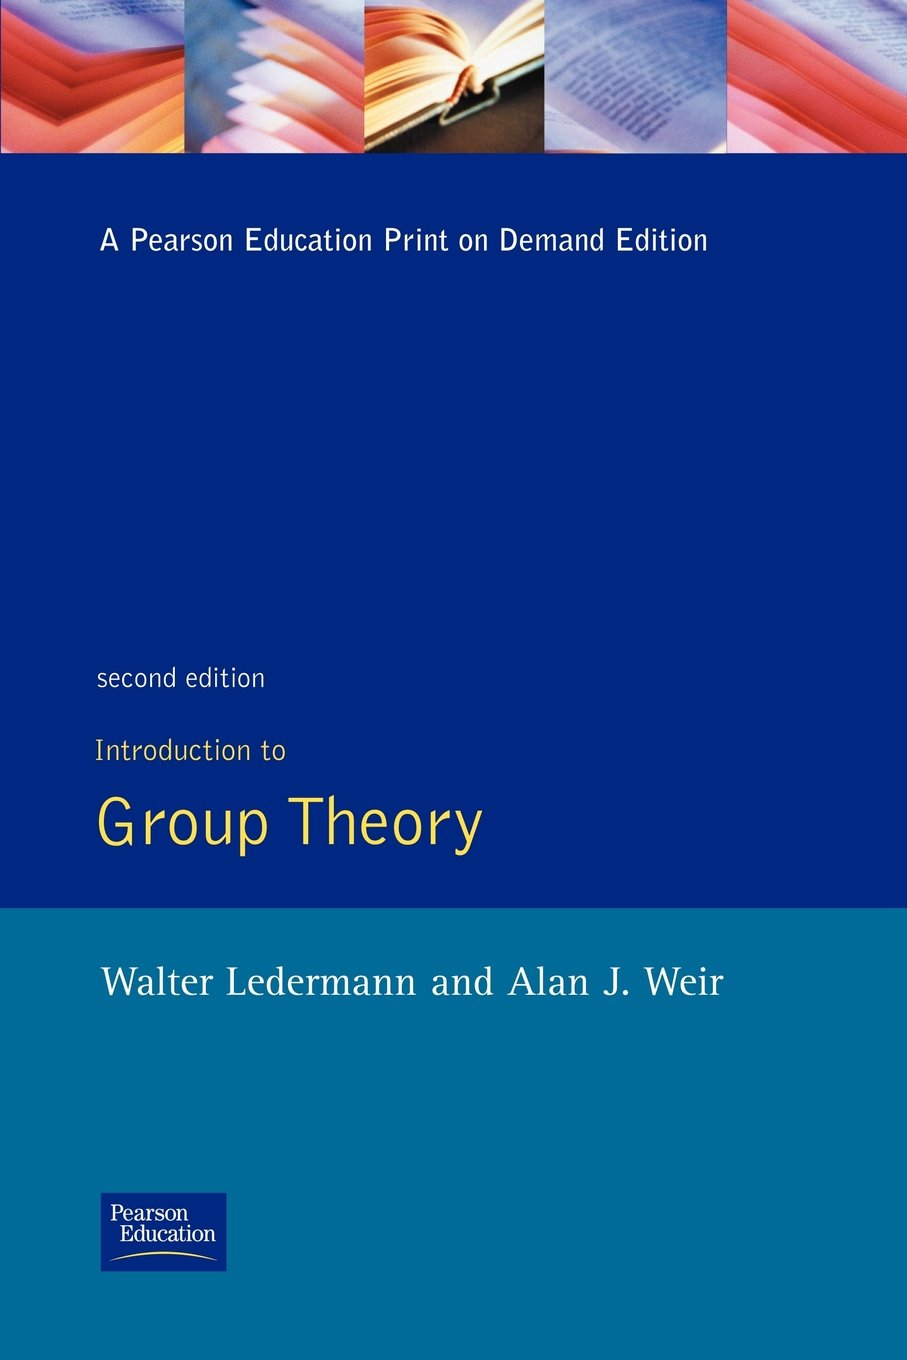 Introduction to Group Theory by Ledermann and Weir